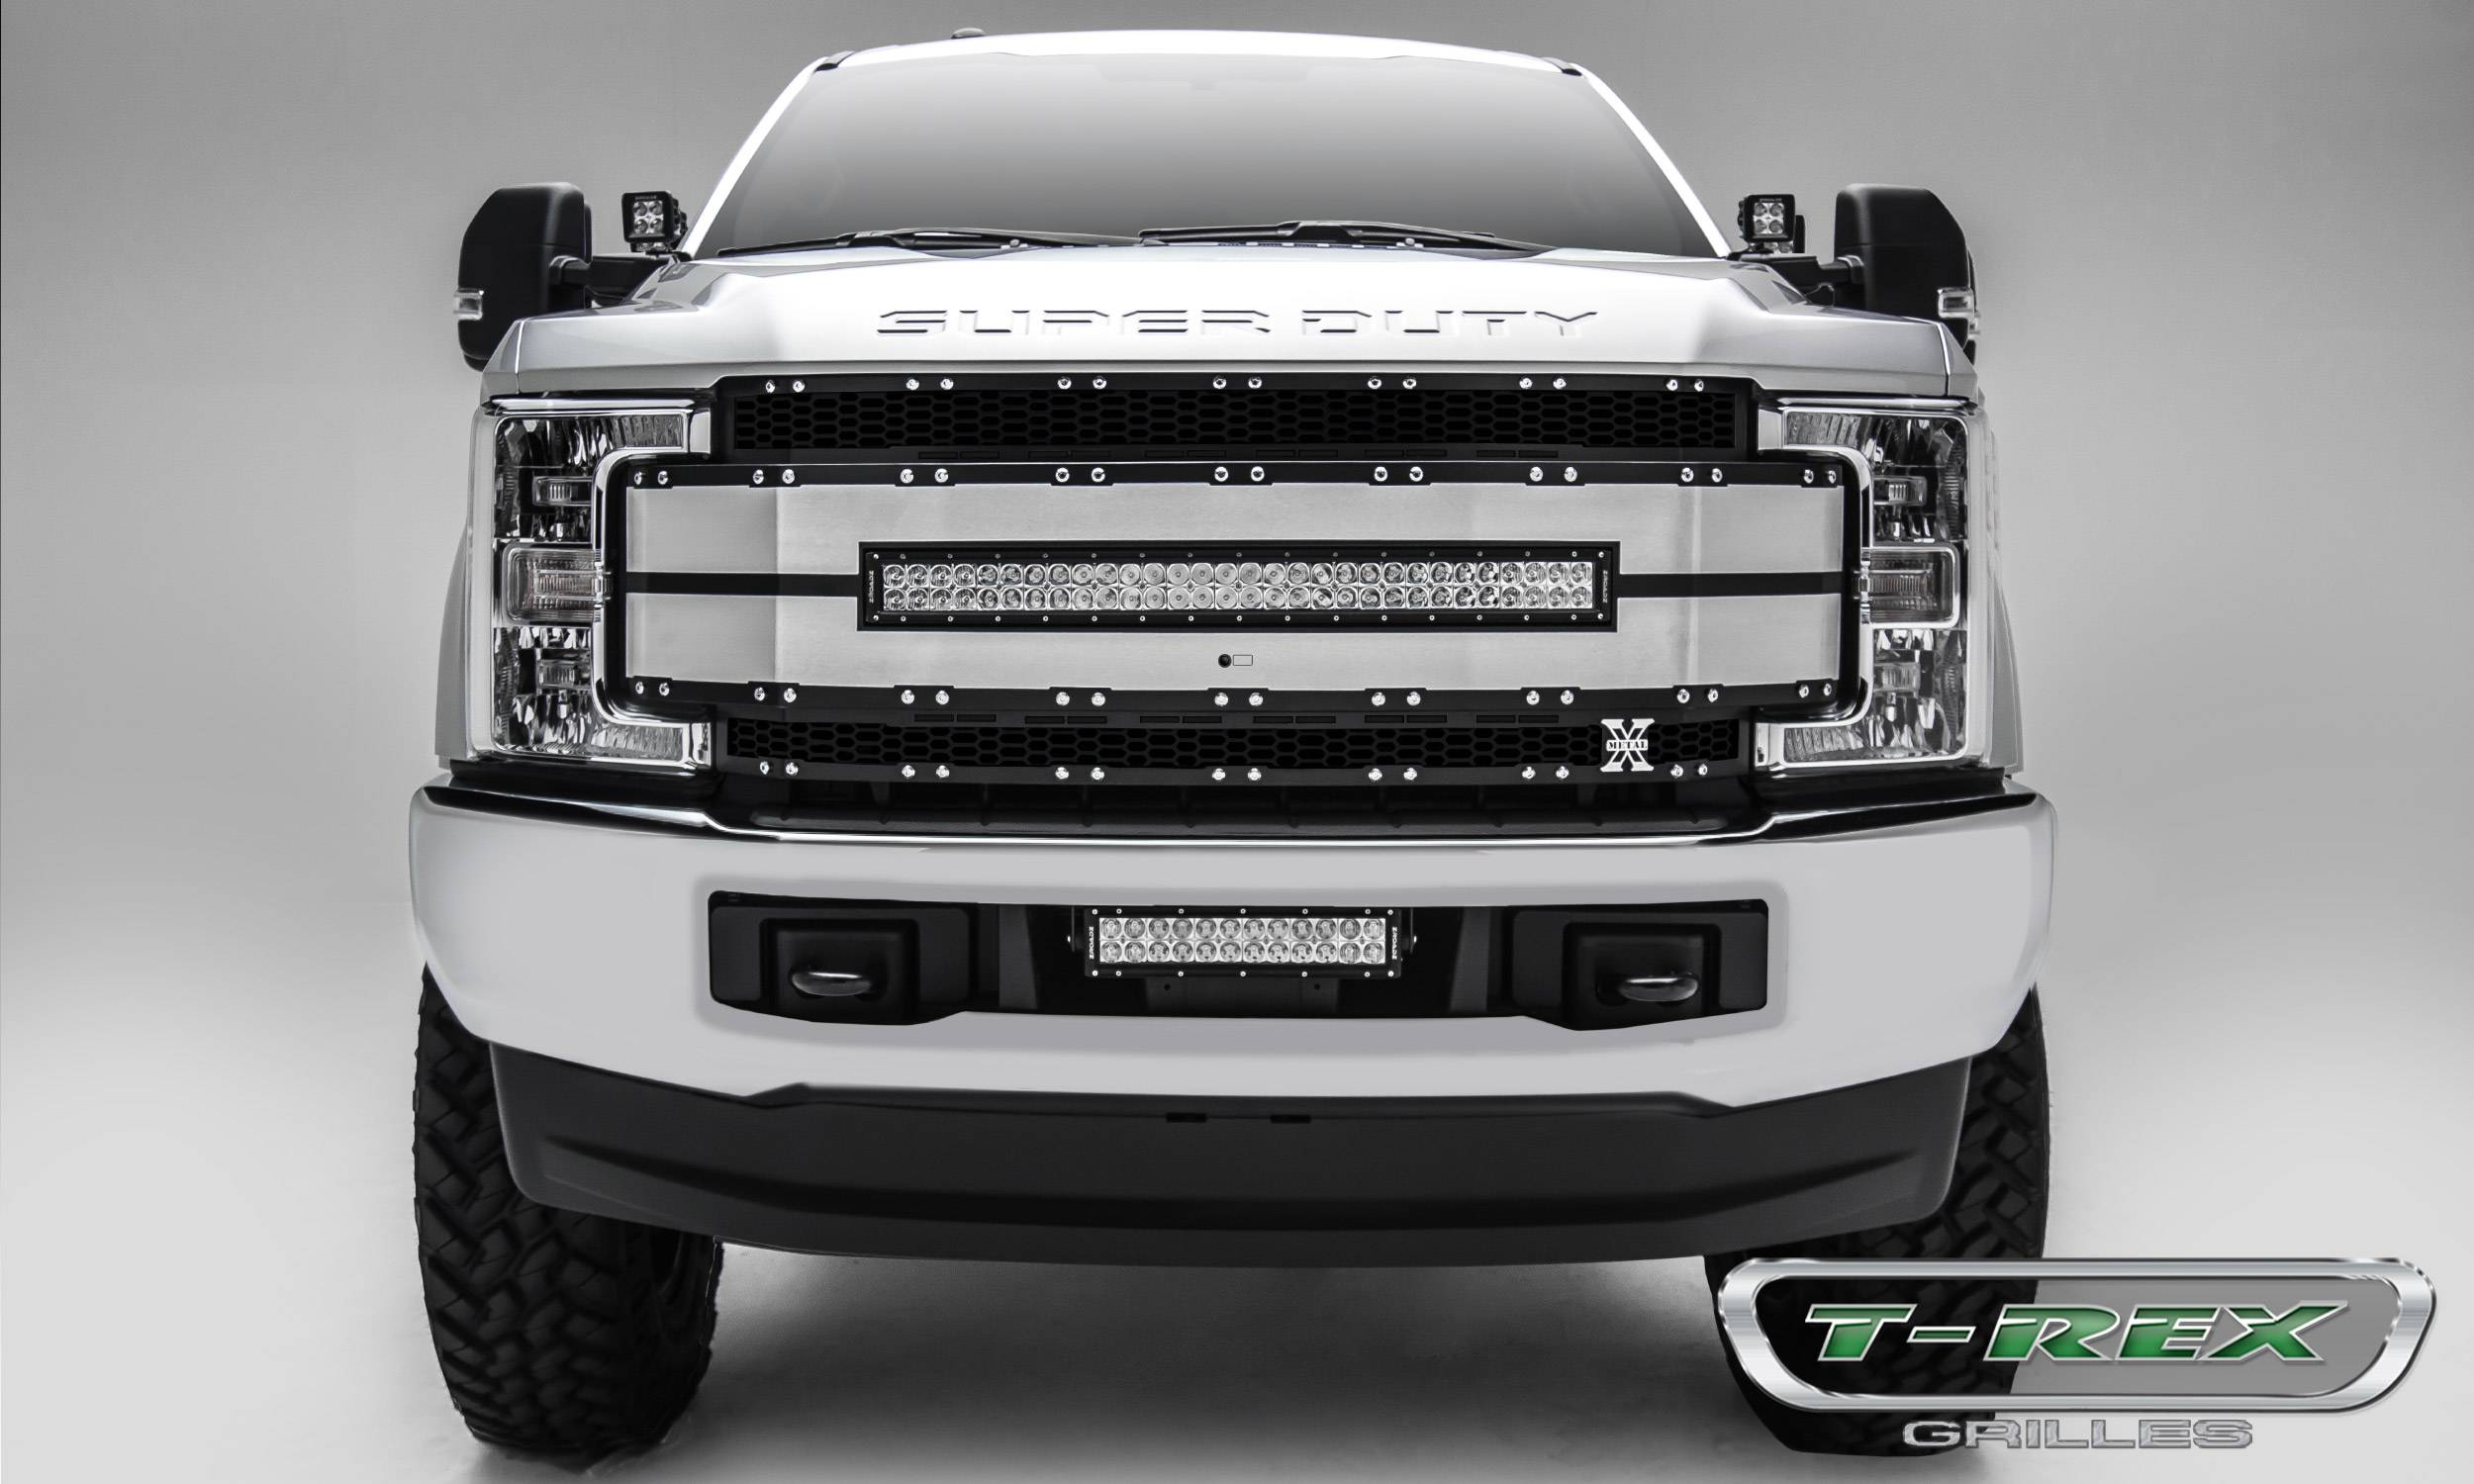 """T-REX Grilles - T-REX Ford Super Duty w/ Camera Provision - TORCH-AL Series - Main Replacement Grille - (1) 30"""" LED Light Bar  - Pt # 6315493"""